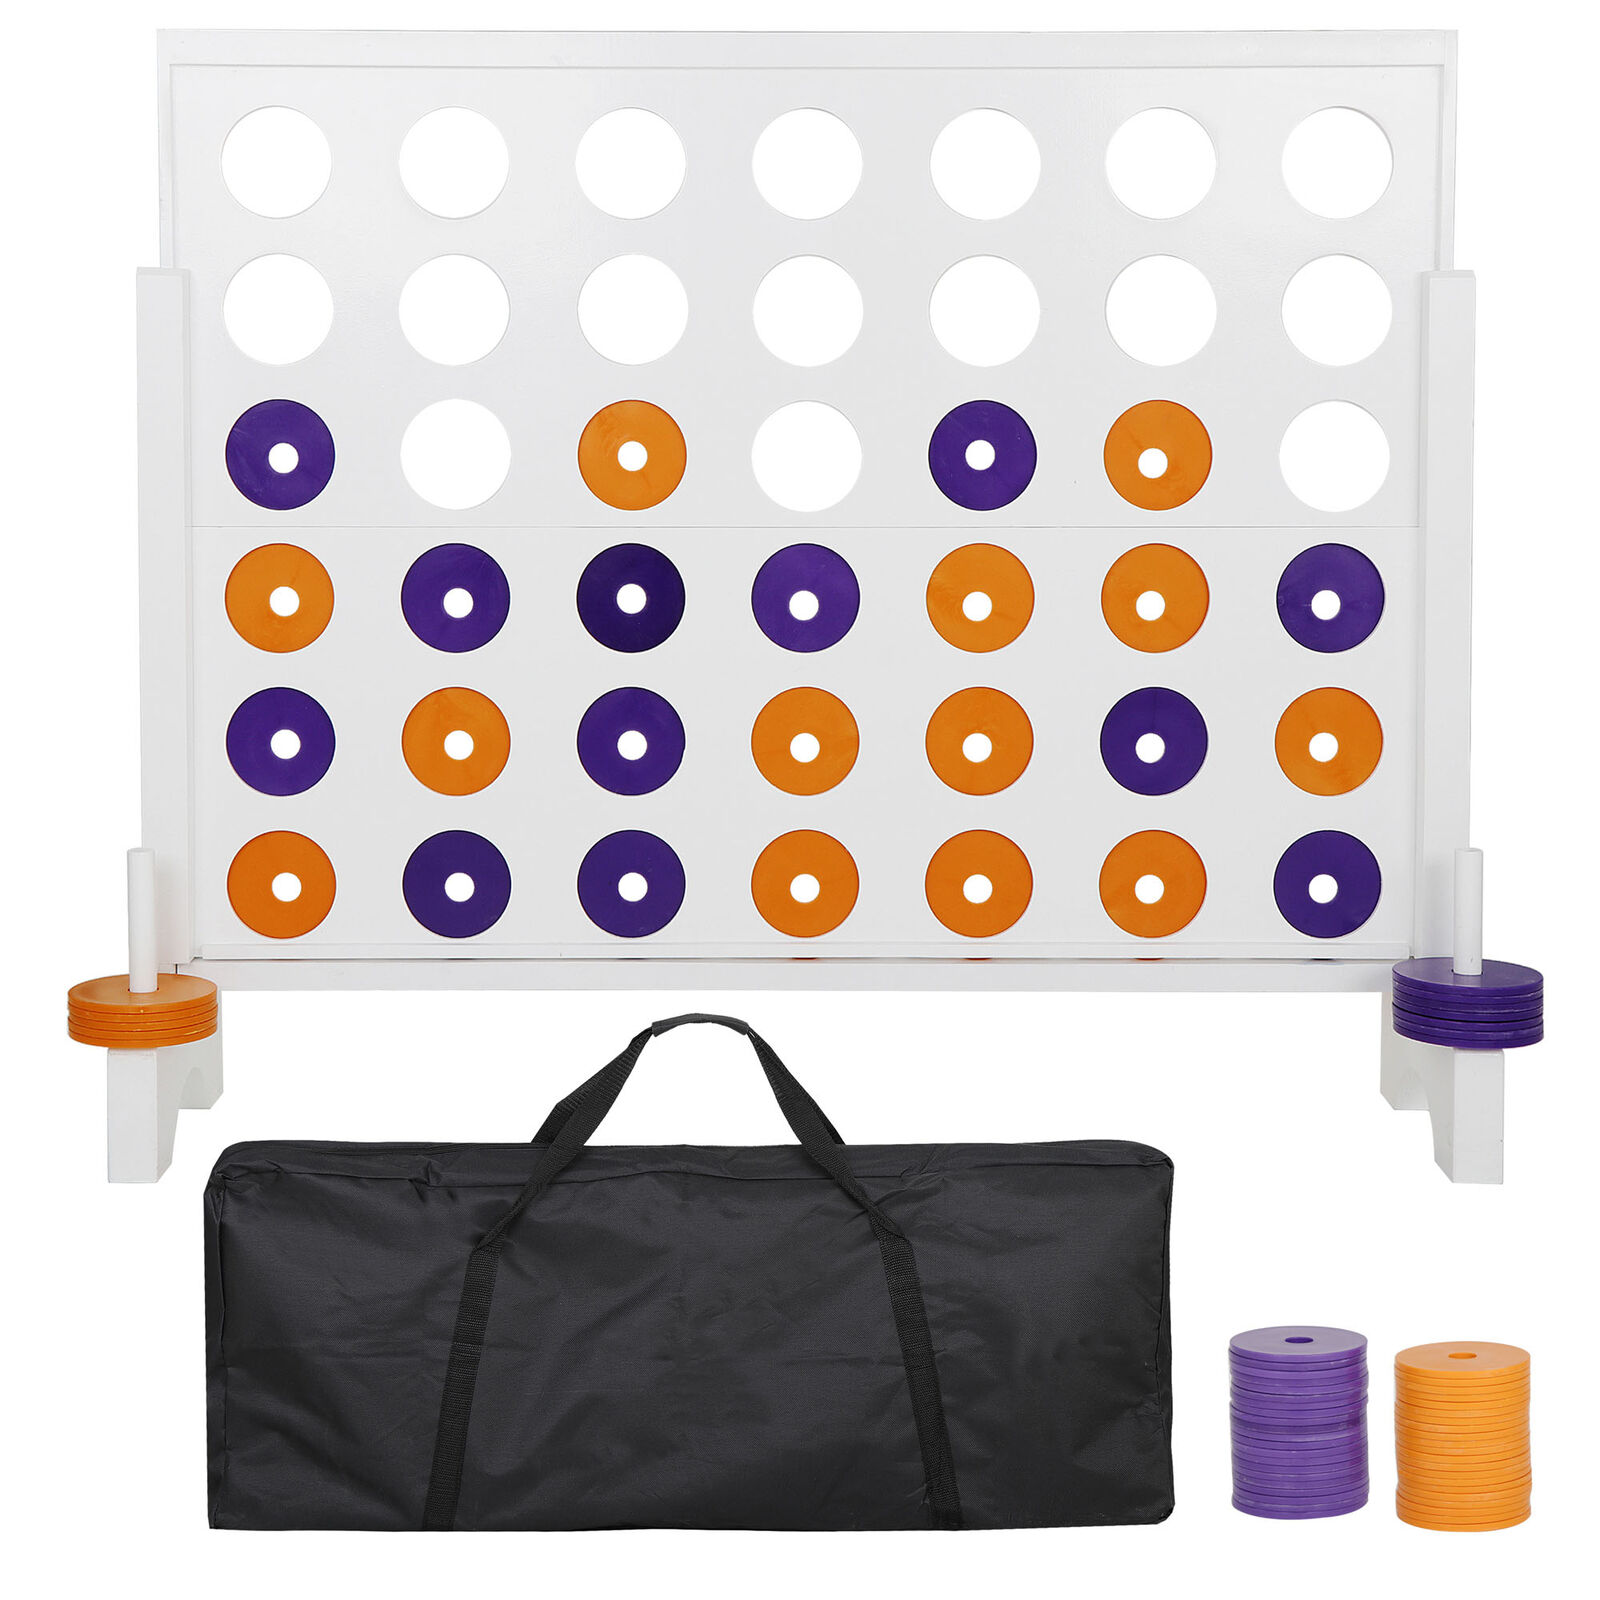 3′ Giant 4 in a Row Board Game For Adults Kids Family Yard Events Indoor Outdoor Board & Traditional Games